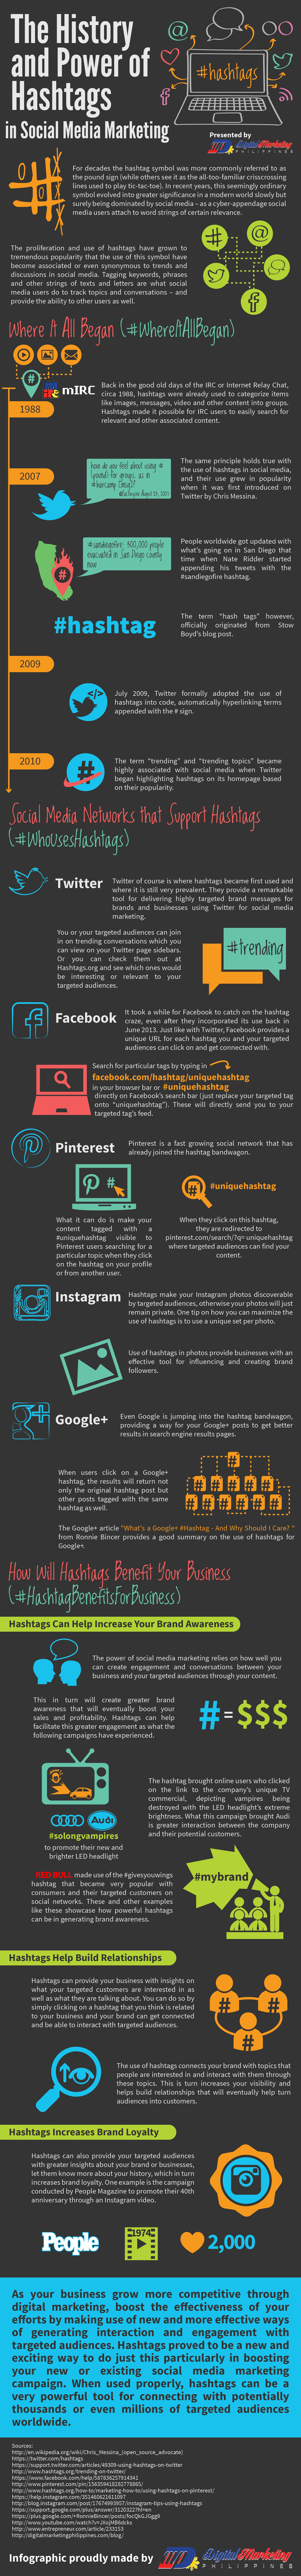 The History and Power of Hashtags in Social Media Marketing (Infographic) - An Infographic from Digital Marketing Philippines